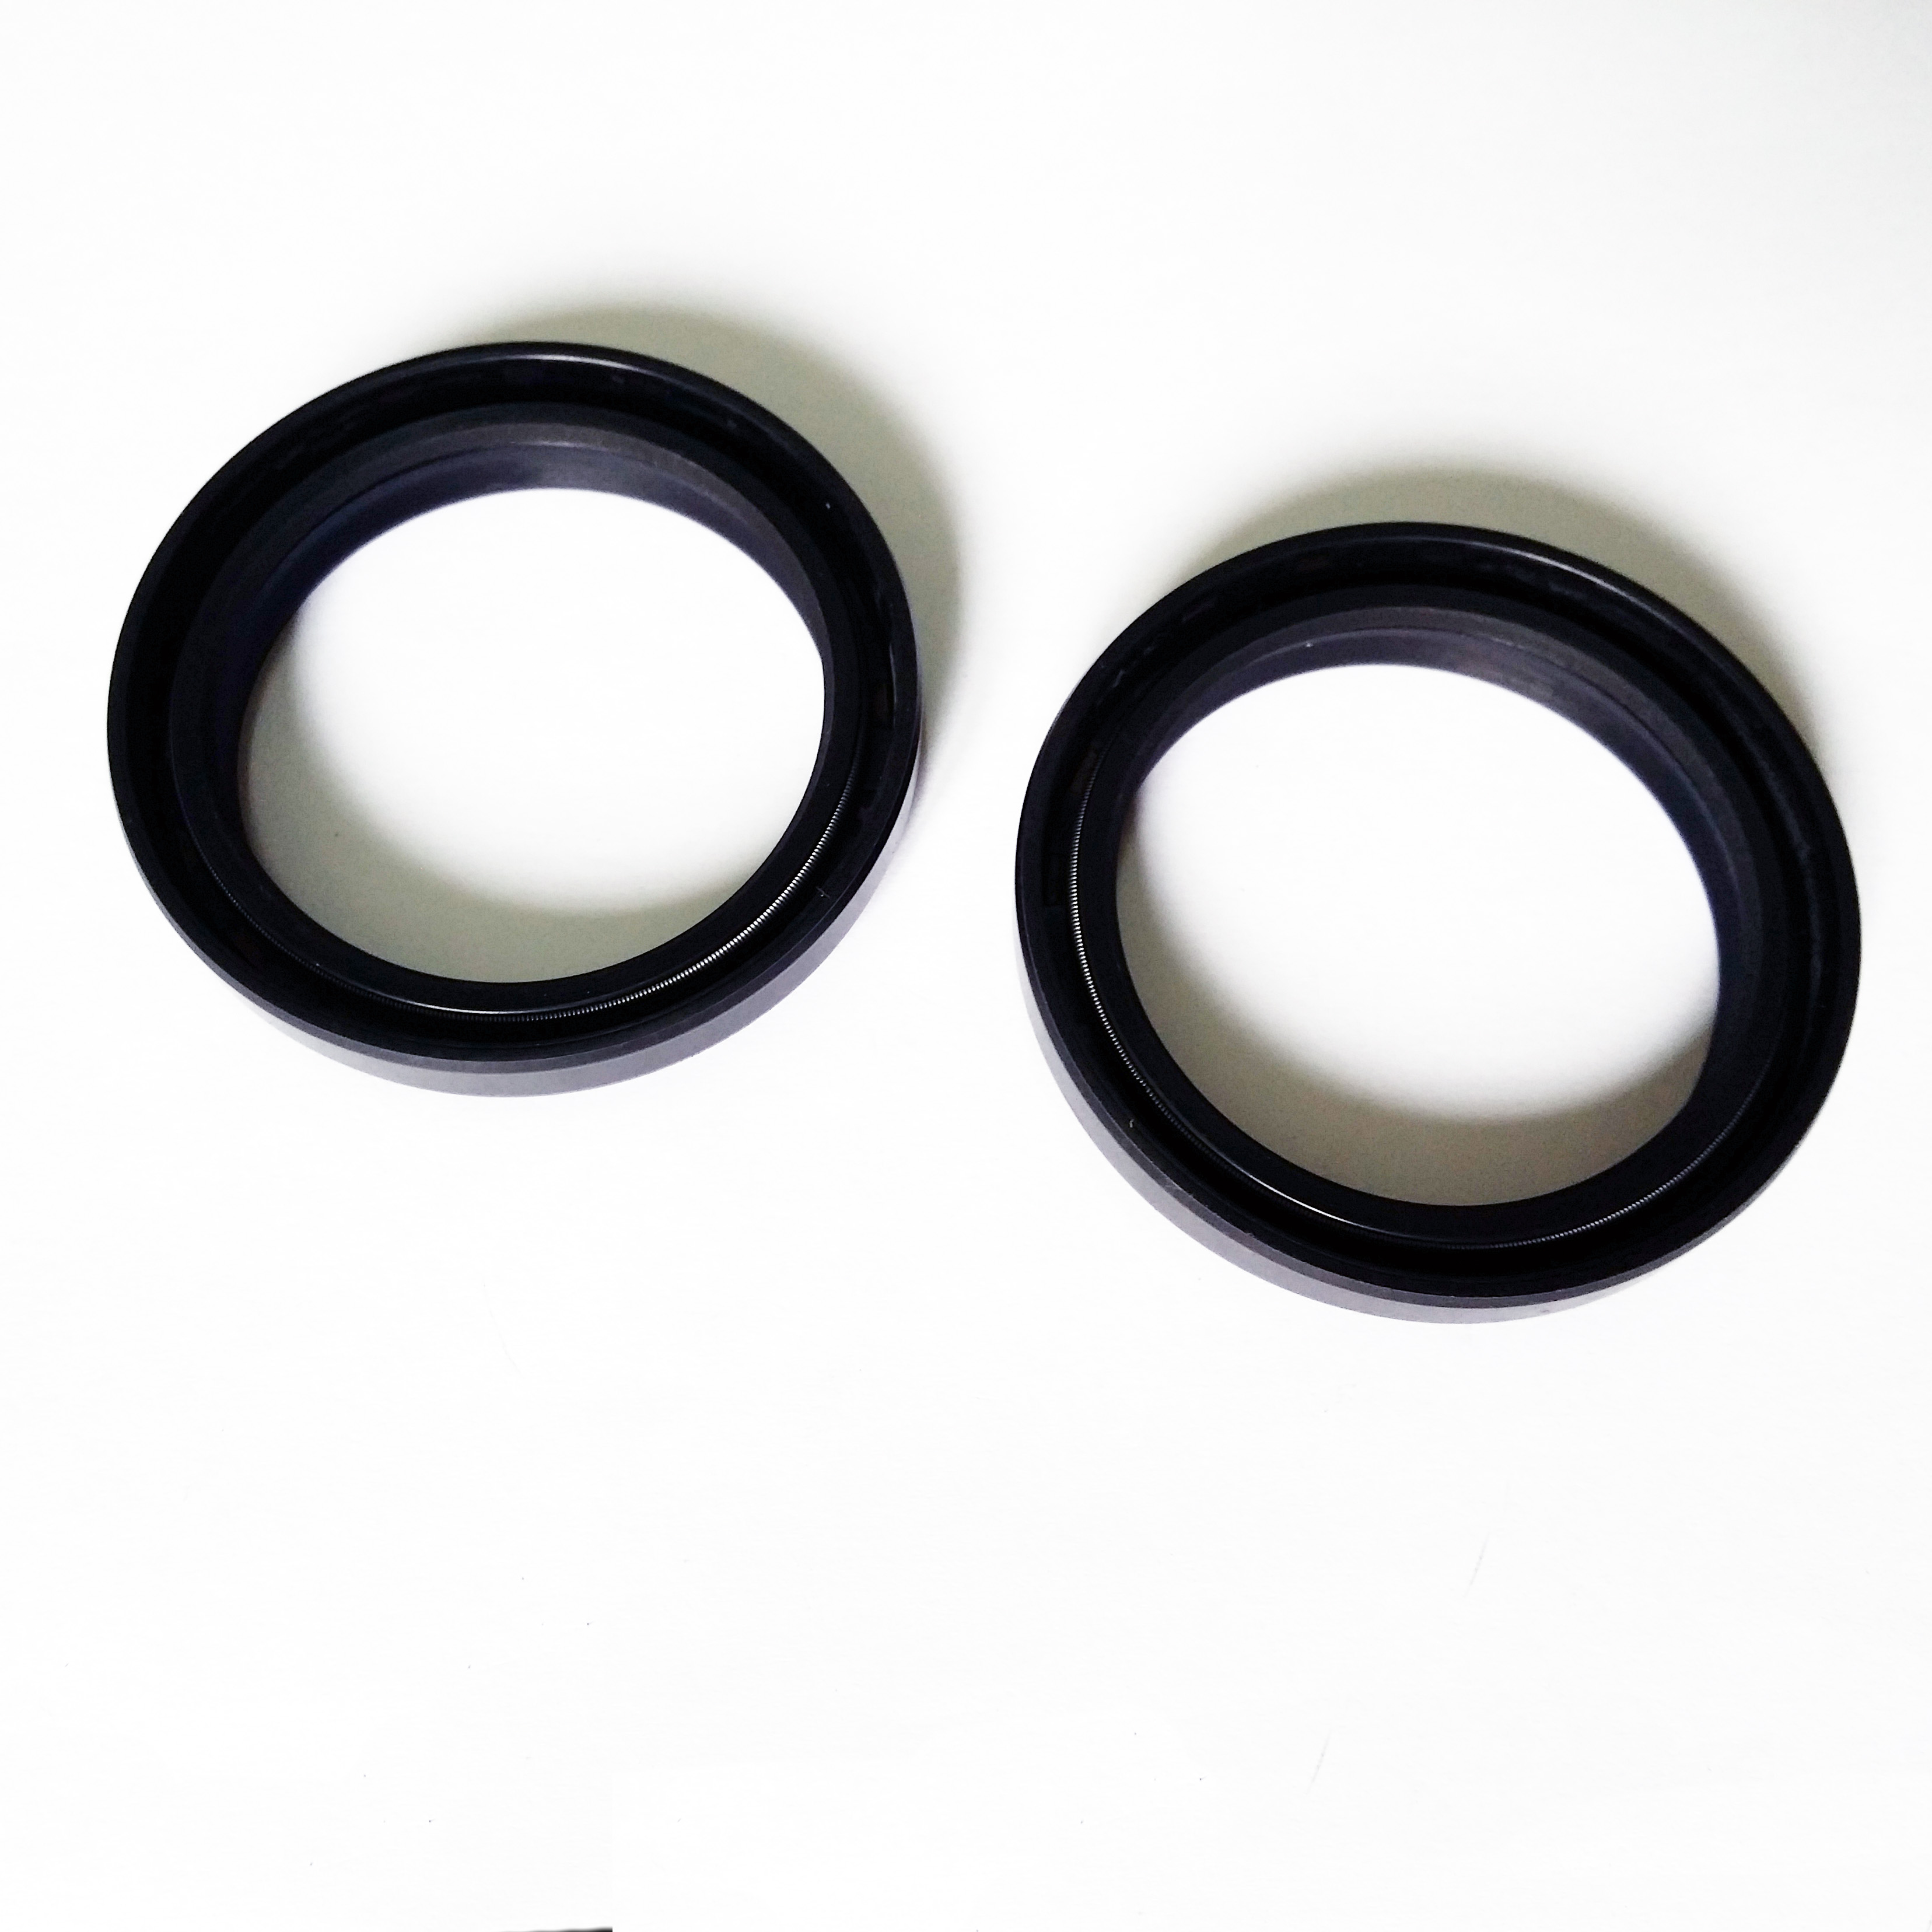 K-Tech BMW F800GS 2008-2013 NOK Front Fork Oil Seals 45x58x11mm